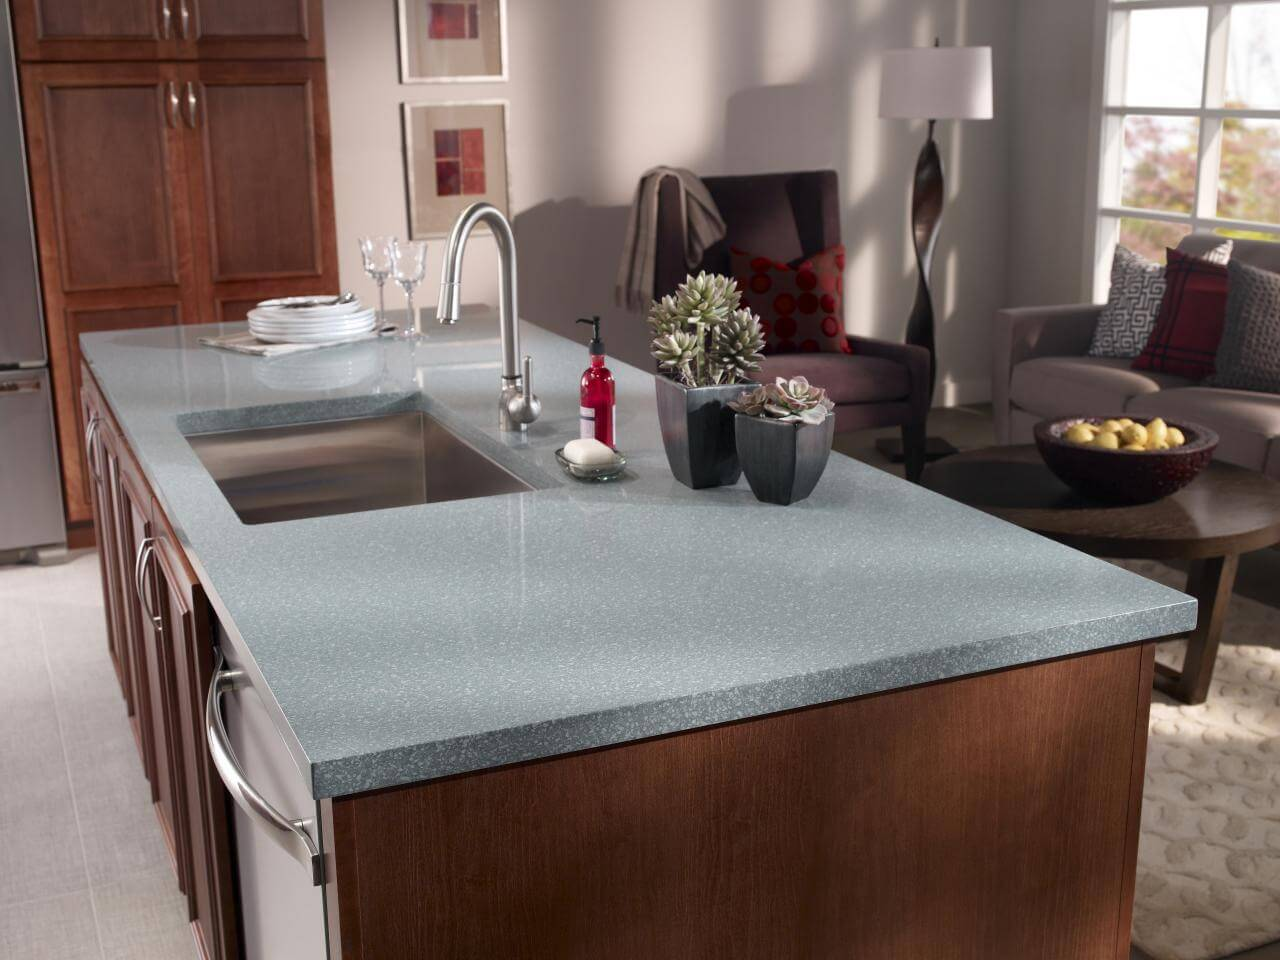 Nothing quite beats the look of granite countertops